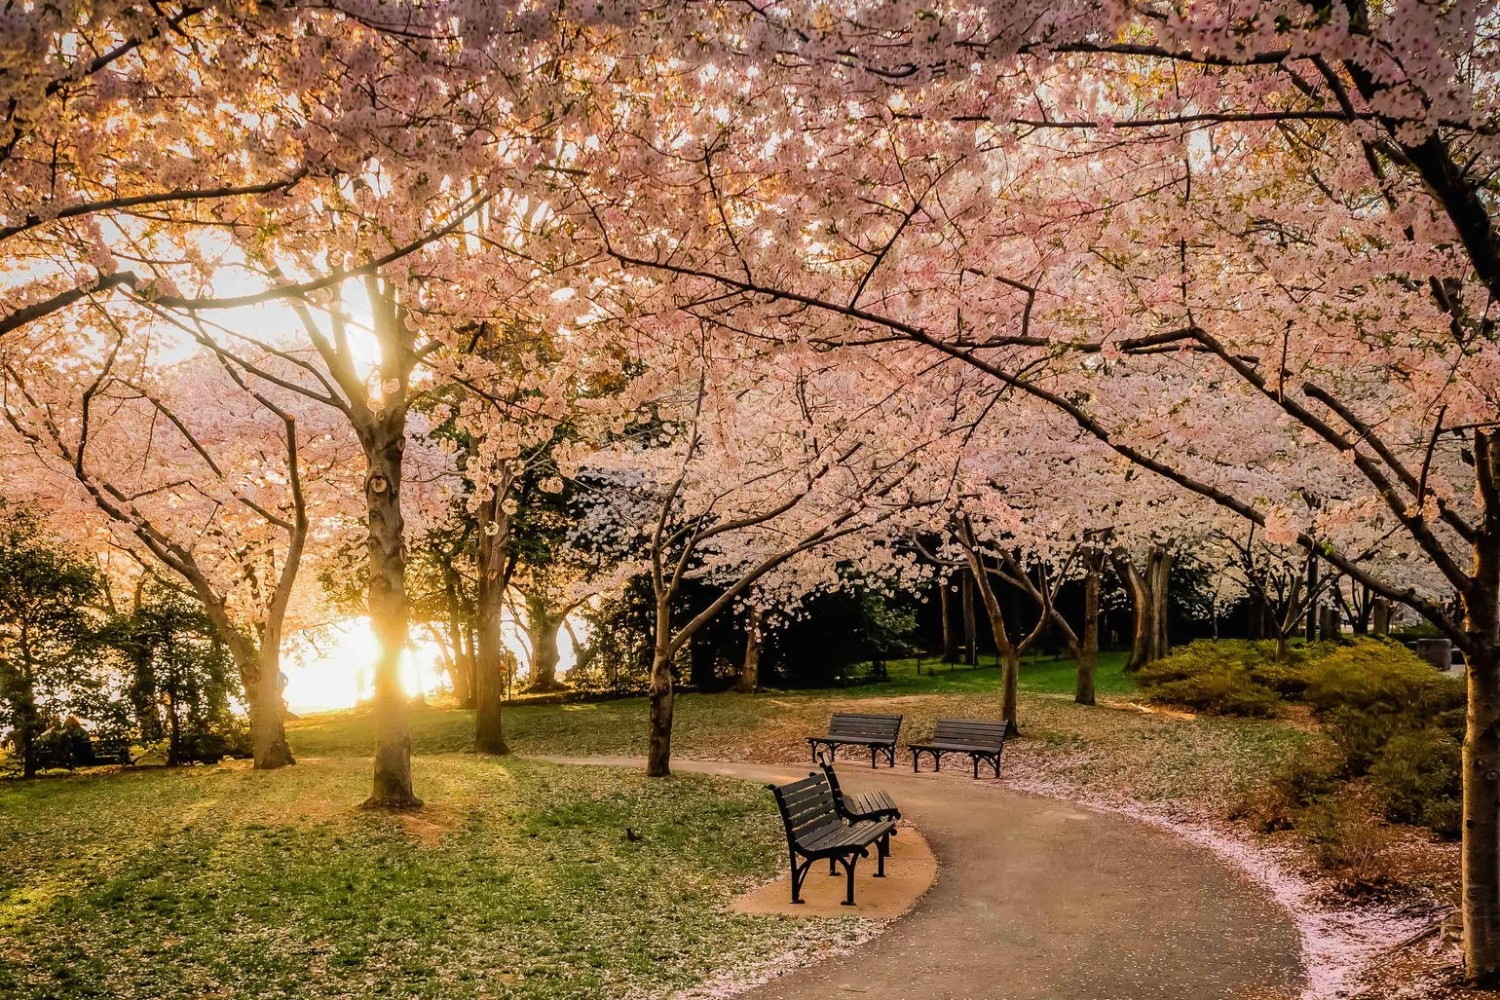 35 Beautiful Photos of Cherry Blossoms Around the World